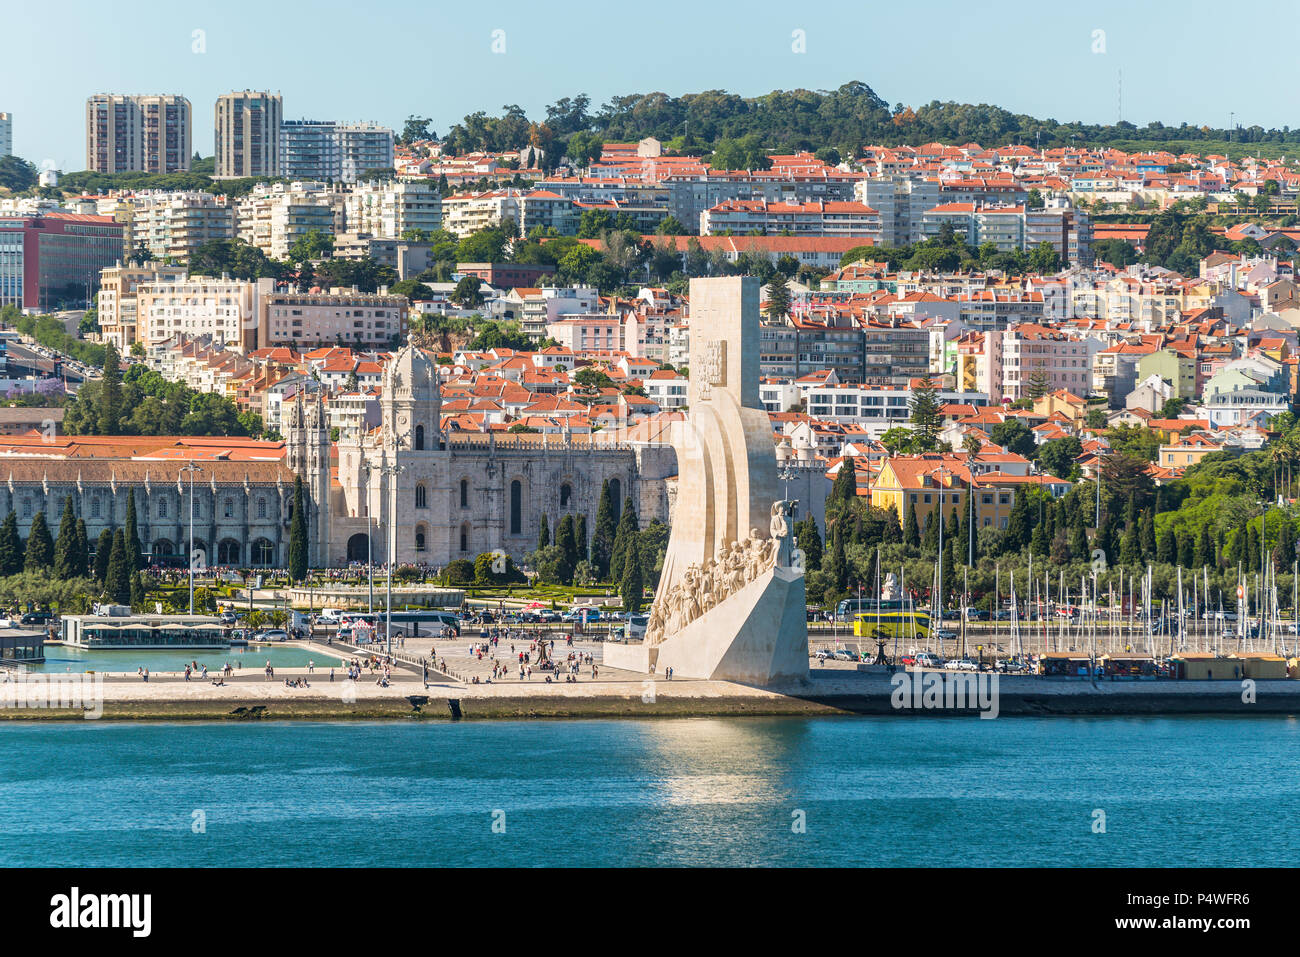 Lisbon, Portugal - May 19, 2017: View of Monument to the Discoveries (Padrao dos Descobrimentos) on bank of the Tagus River, Belem district, Lisbon, P - Stock Image